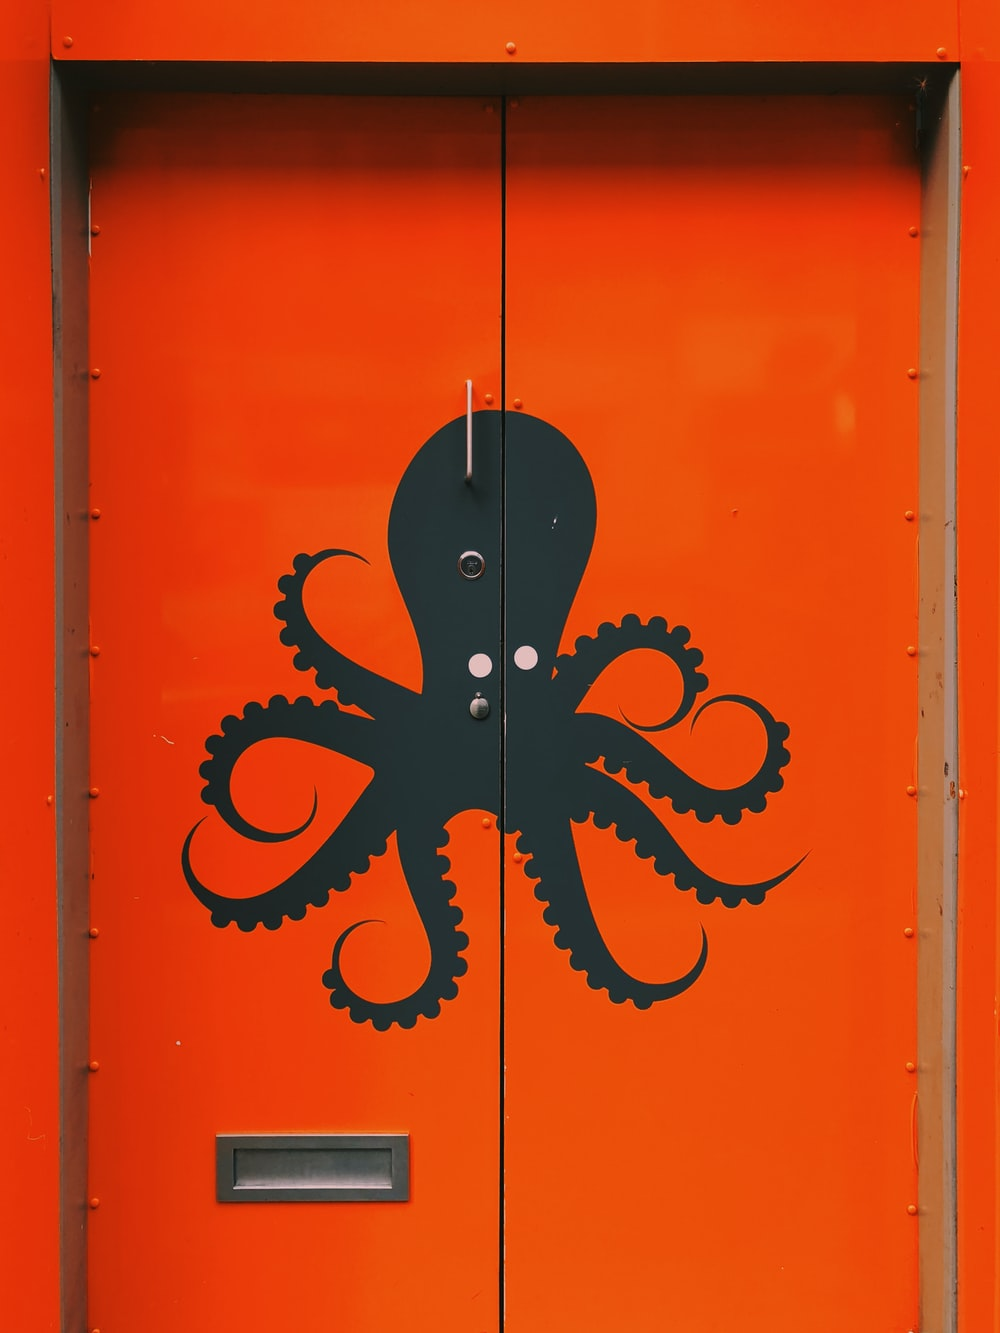 100 Octopus Pictures Hd Download Free Images On Unsplash